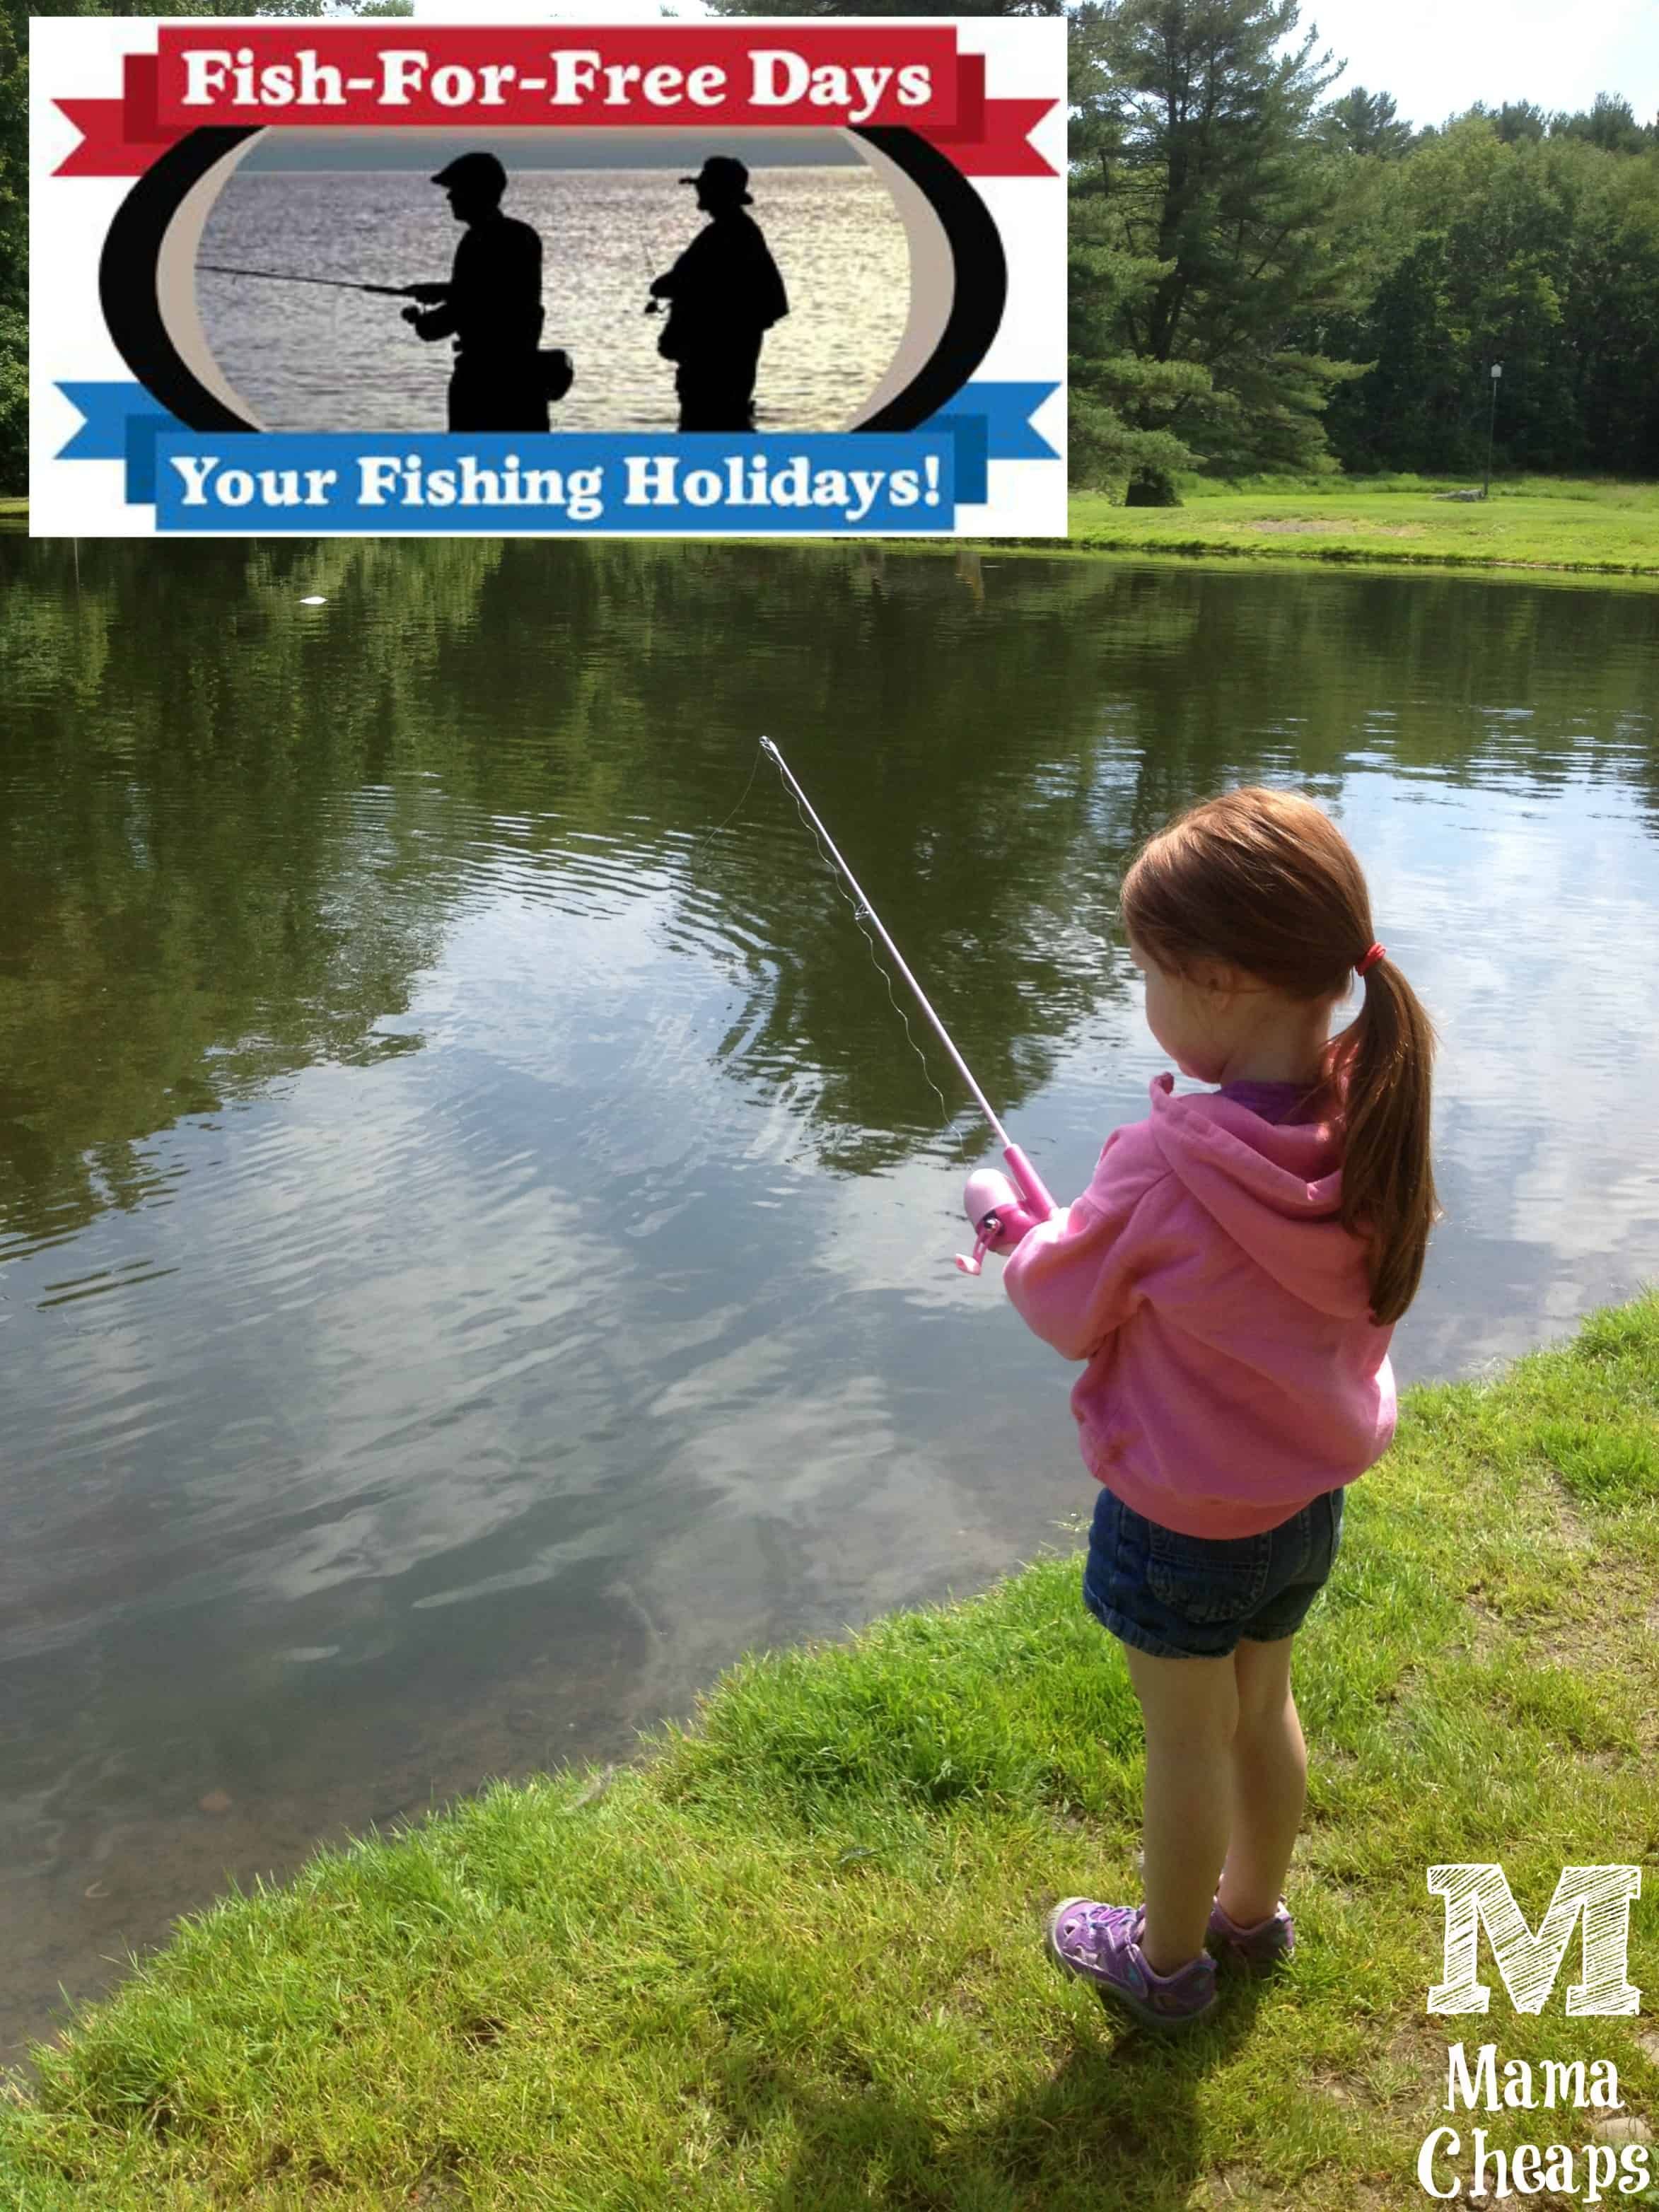 Pennsylvania fish for free day 7 4 17 mama cheaps for Free fishing day 2017 pa